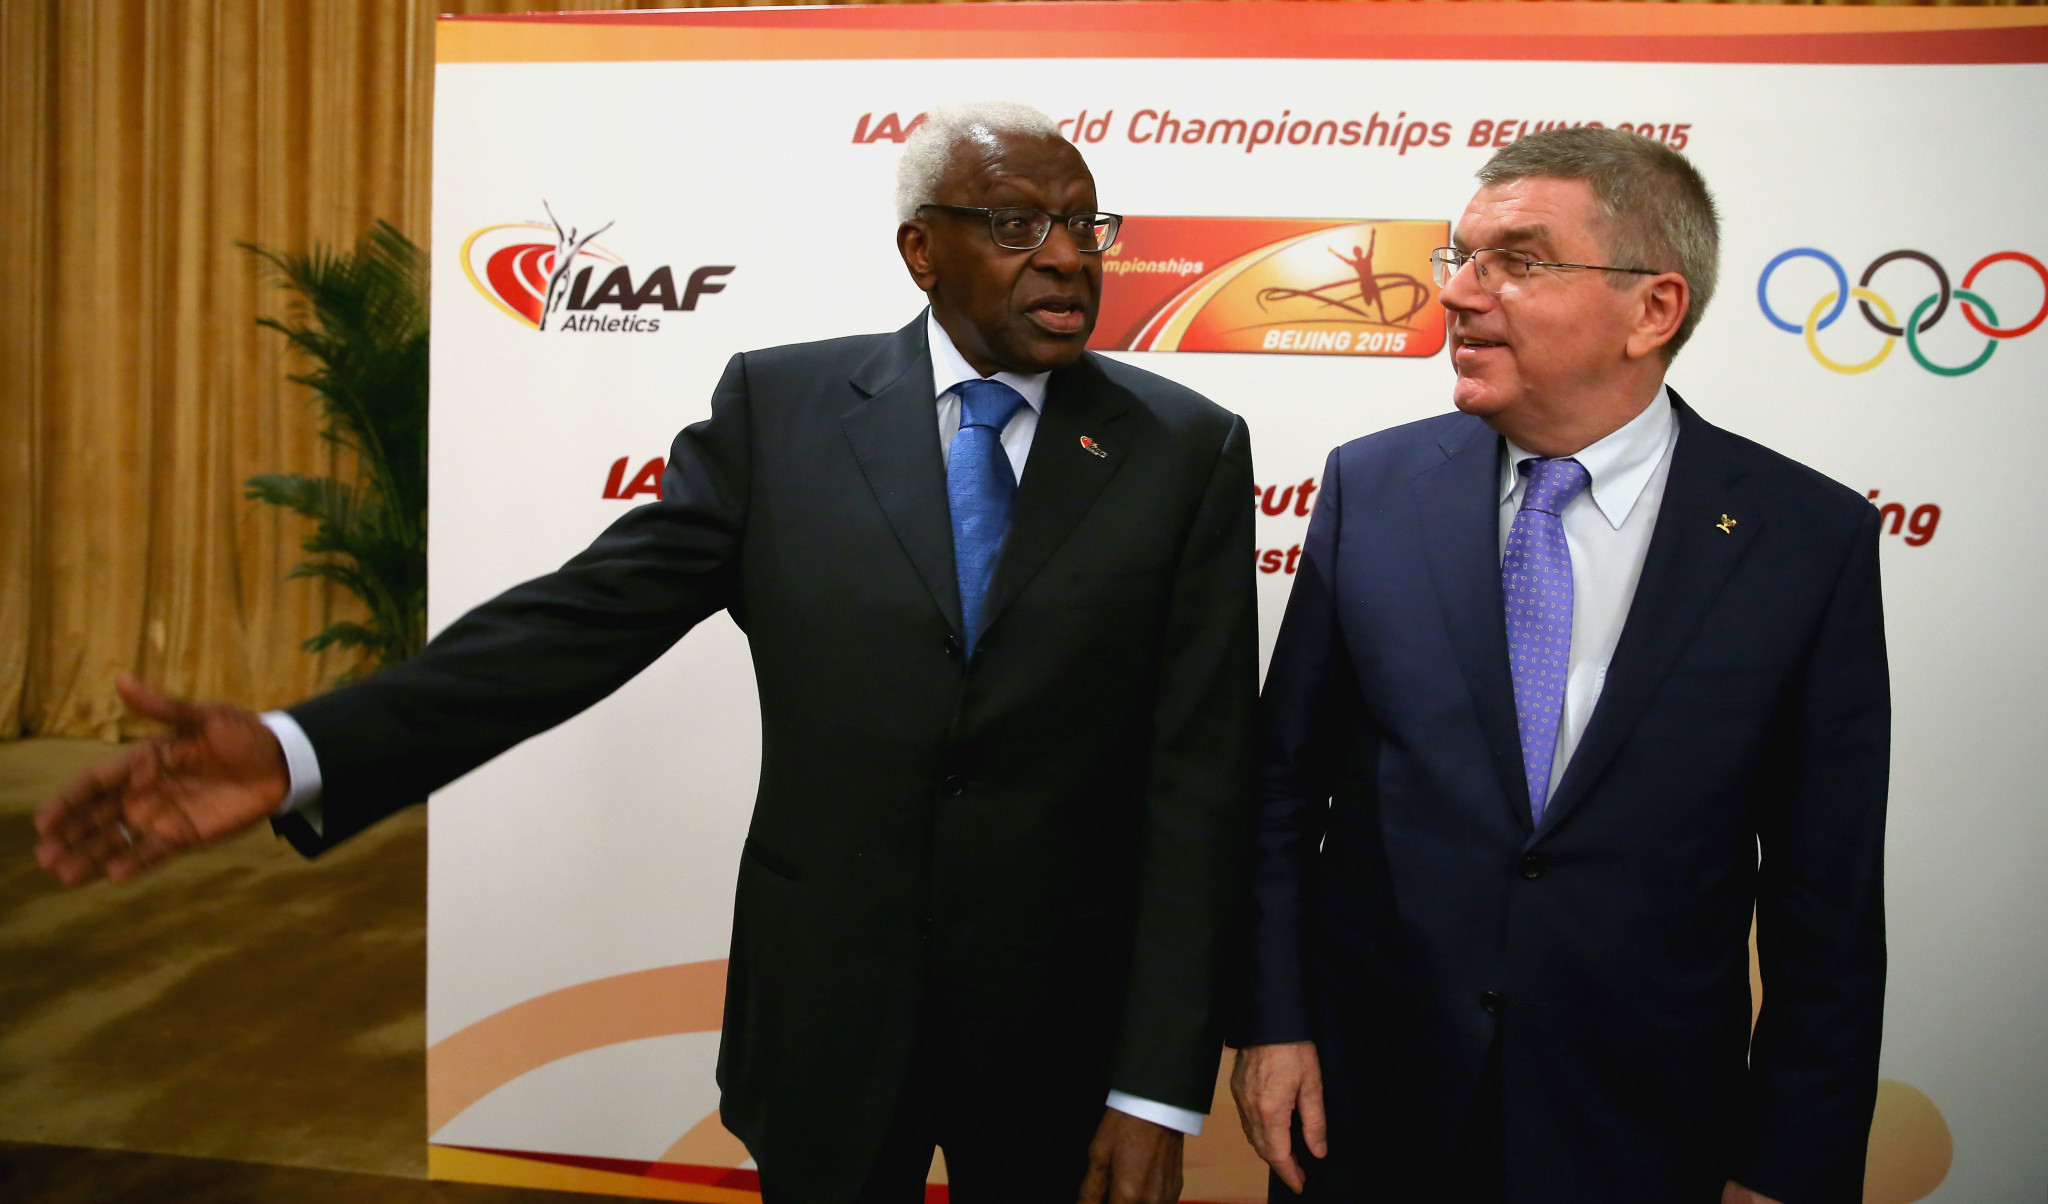 Before the current corruption scandal, Lamine Diack was a highly influential and revered IOC member, especially among his African colleagues ©Getty Images